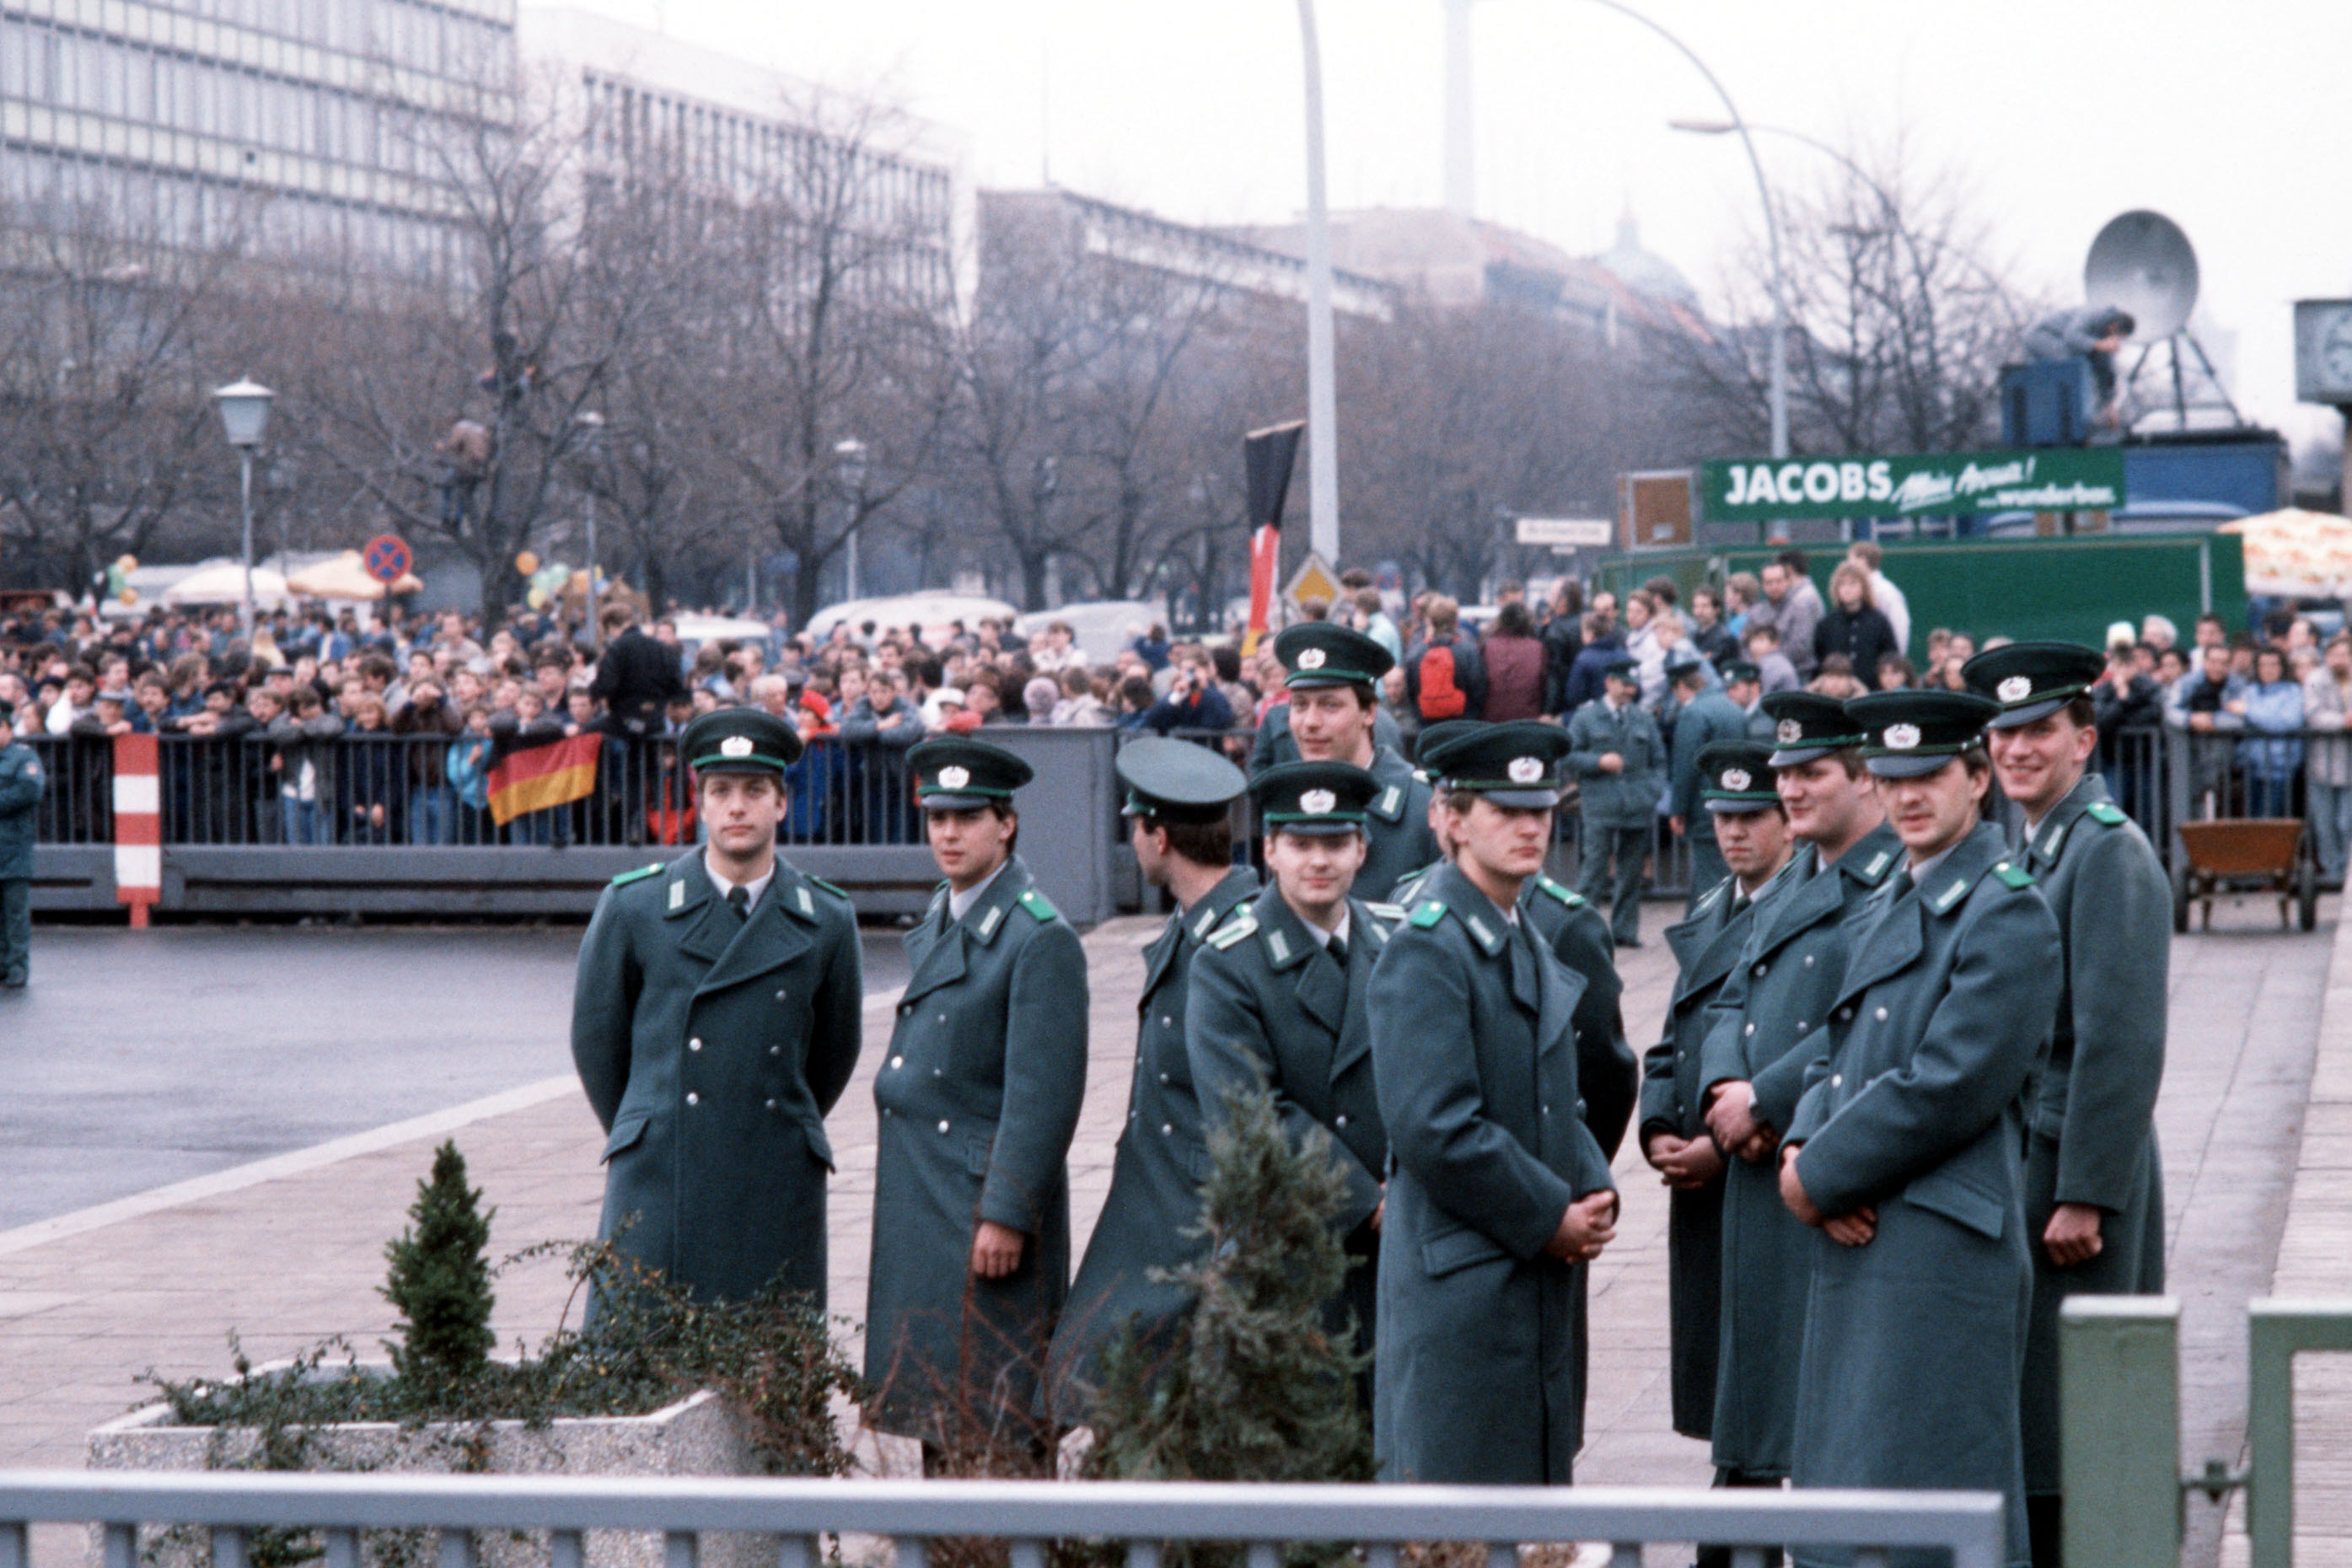 http://upload.wikimedia.org/wikipedia/commons/d/de/Volkspolizei_at_the_official_opening_of_the_Brandenburg_Gate.jpg